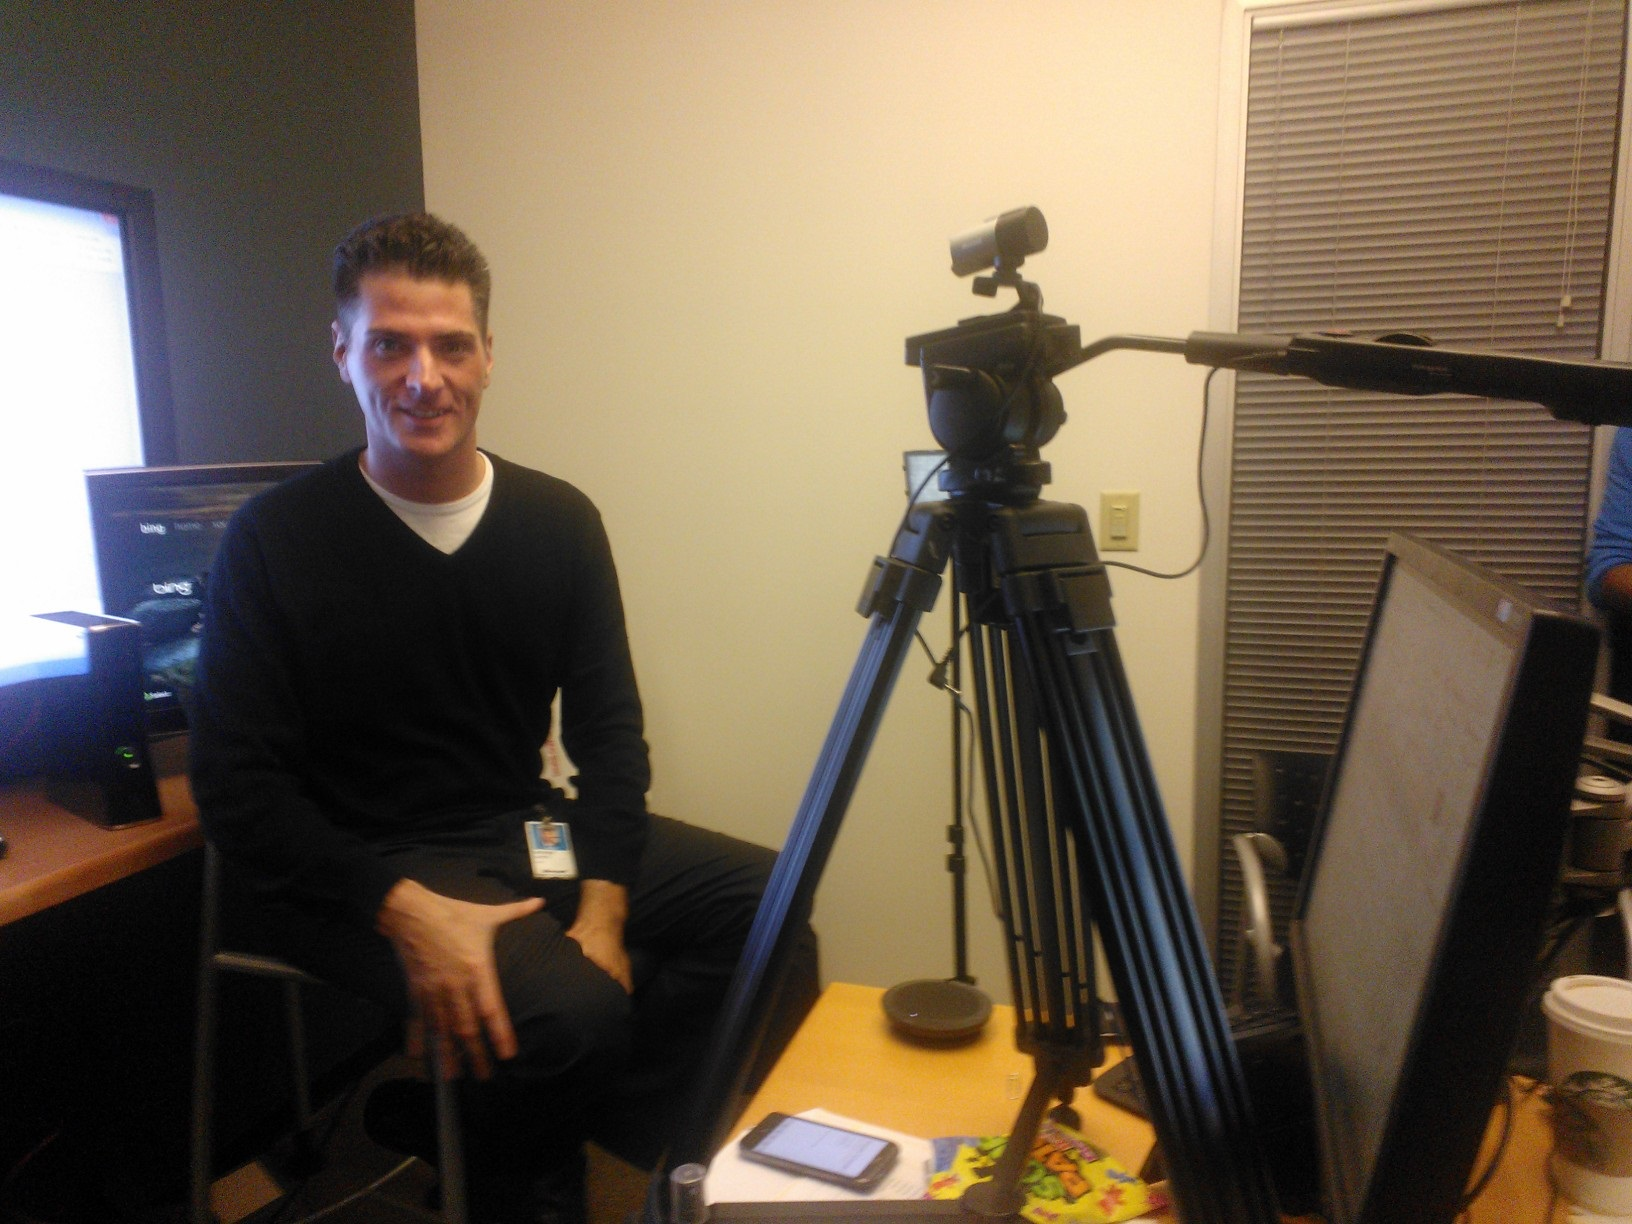 Anthony Salcito's Windows 8 Skype-athon4